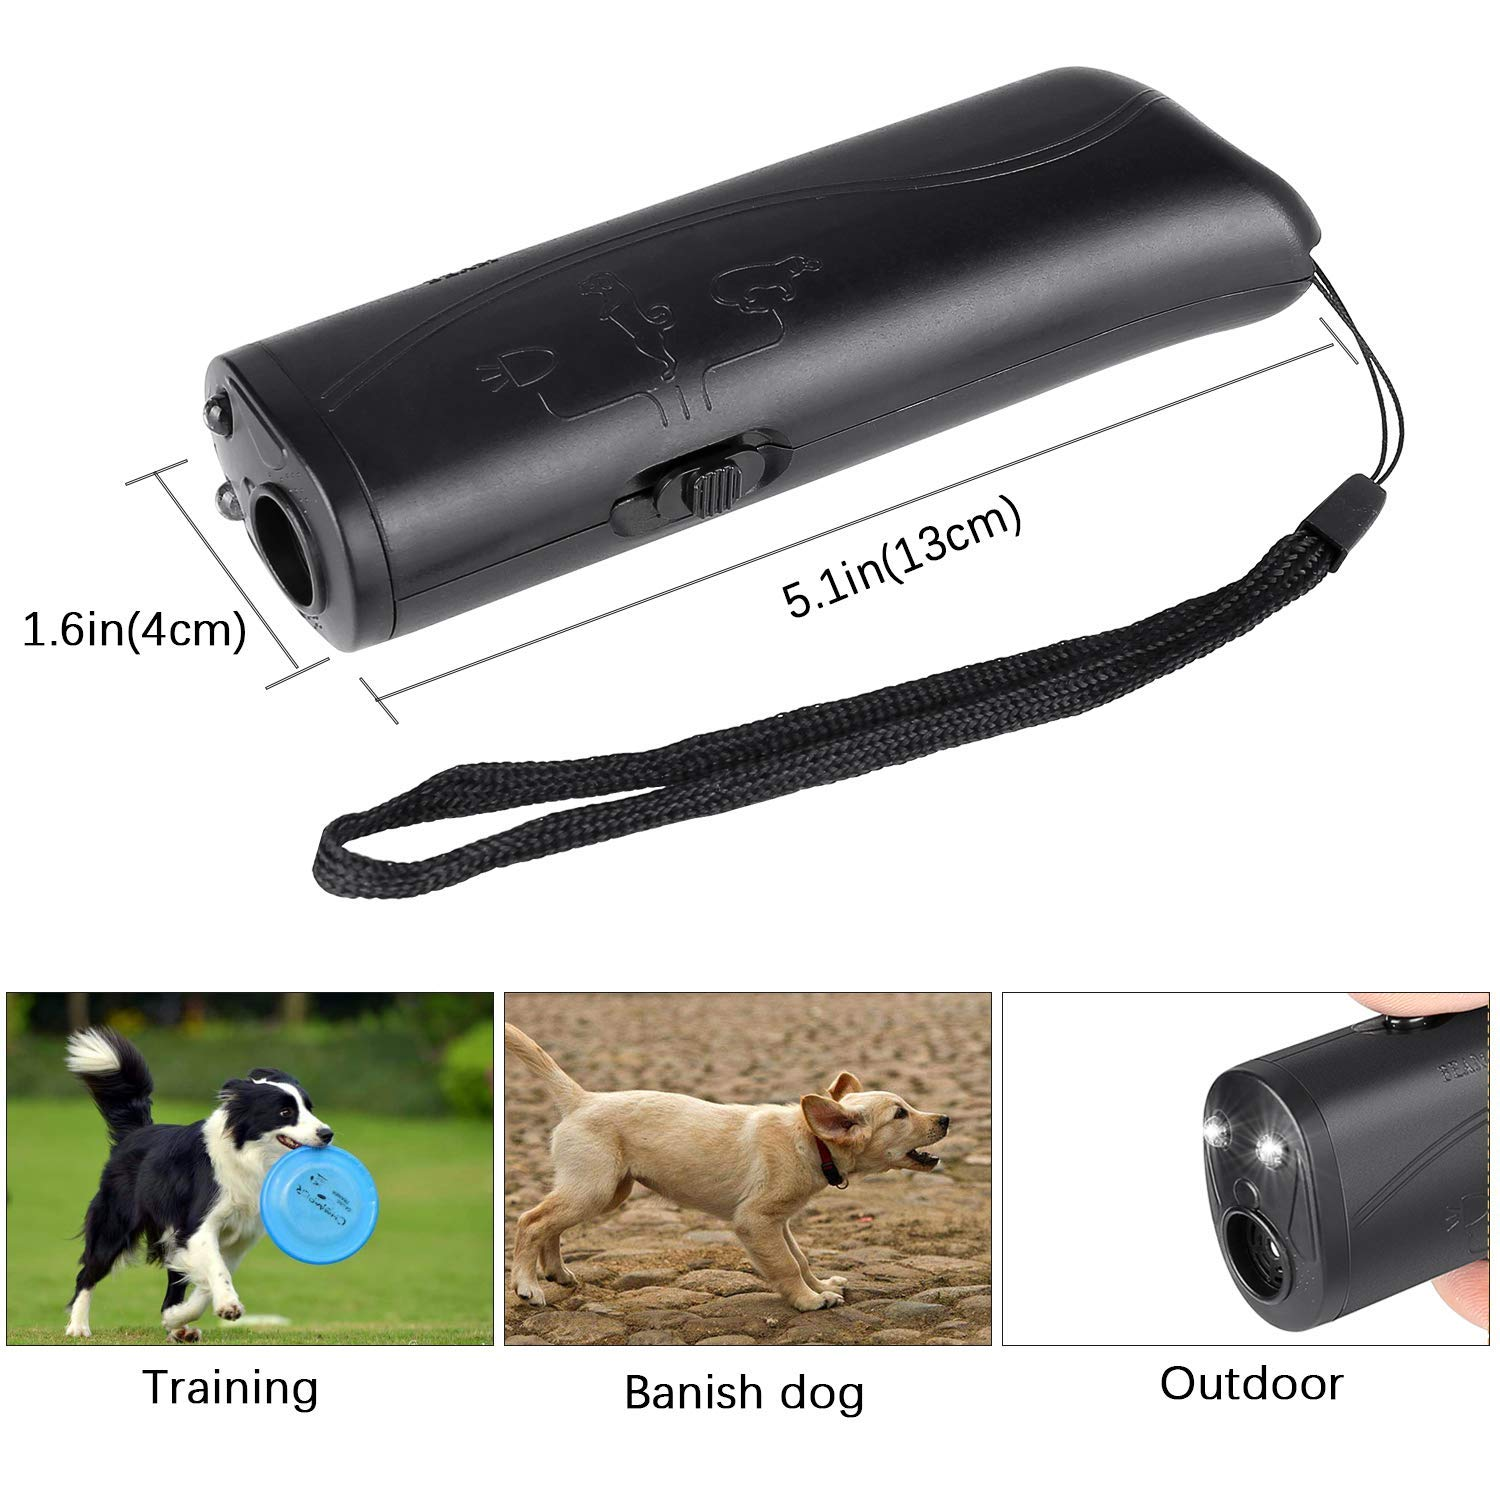 Ultrasonic Dog Repeller and Trainer Device 3 in 1 LED Pet Anti Barking Stop Bark Handheld